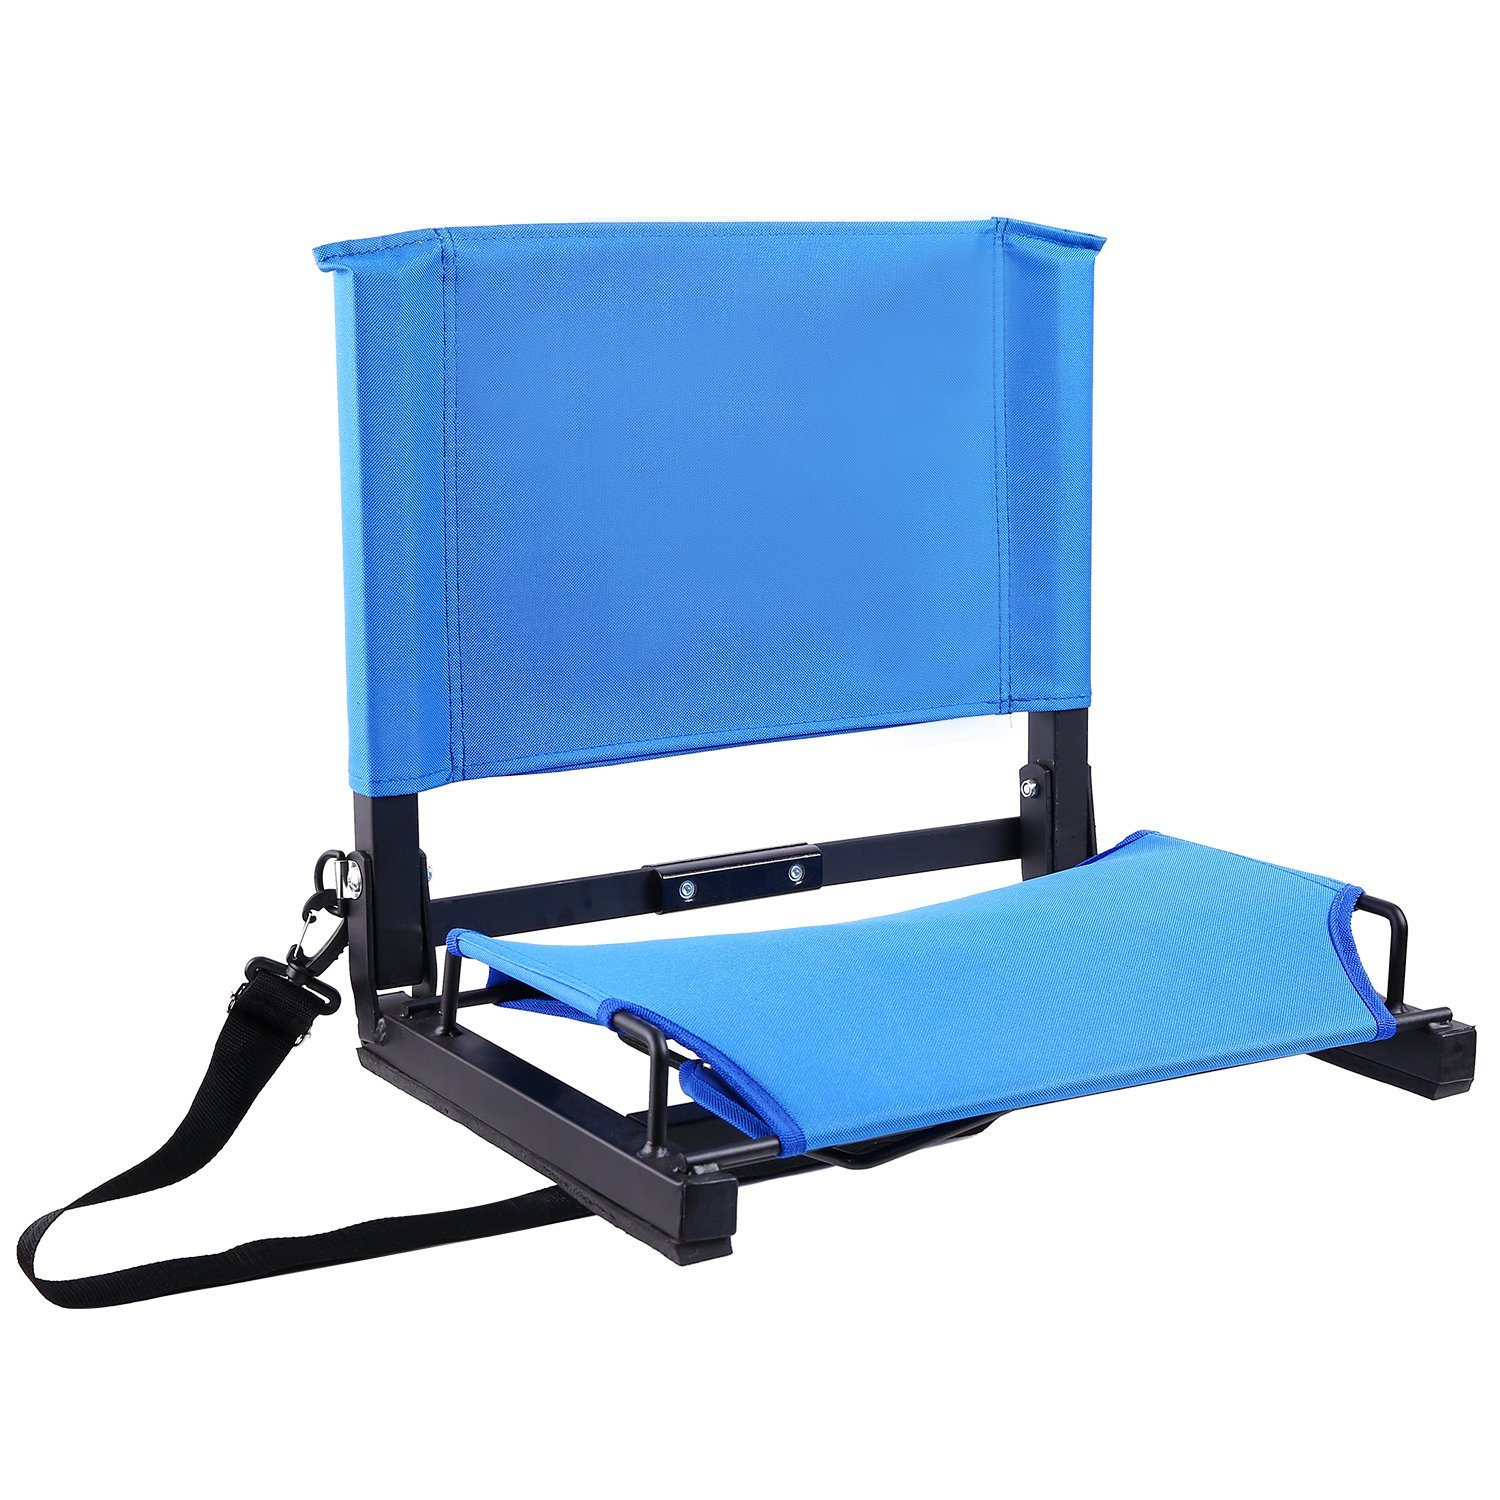 Bleacher Seats With Backs And Cushion Soft Touch Softtouch Extra Wide Stadium Seats For Bleachers Stadium